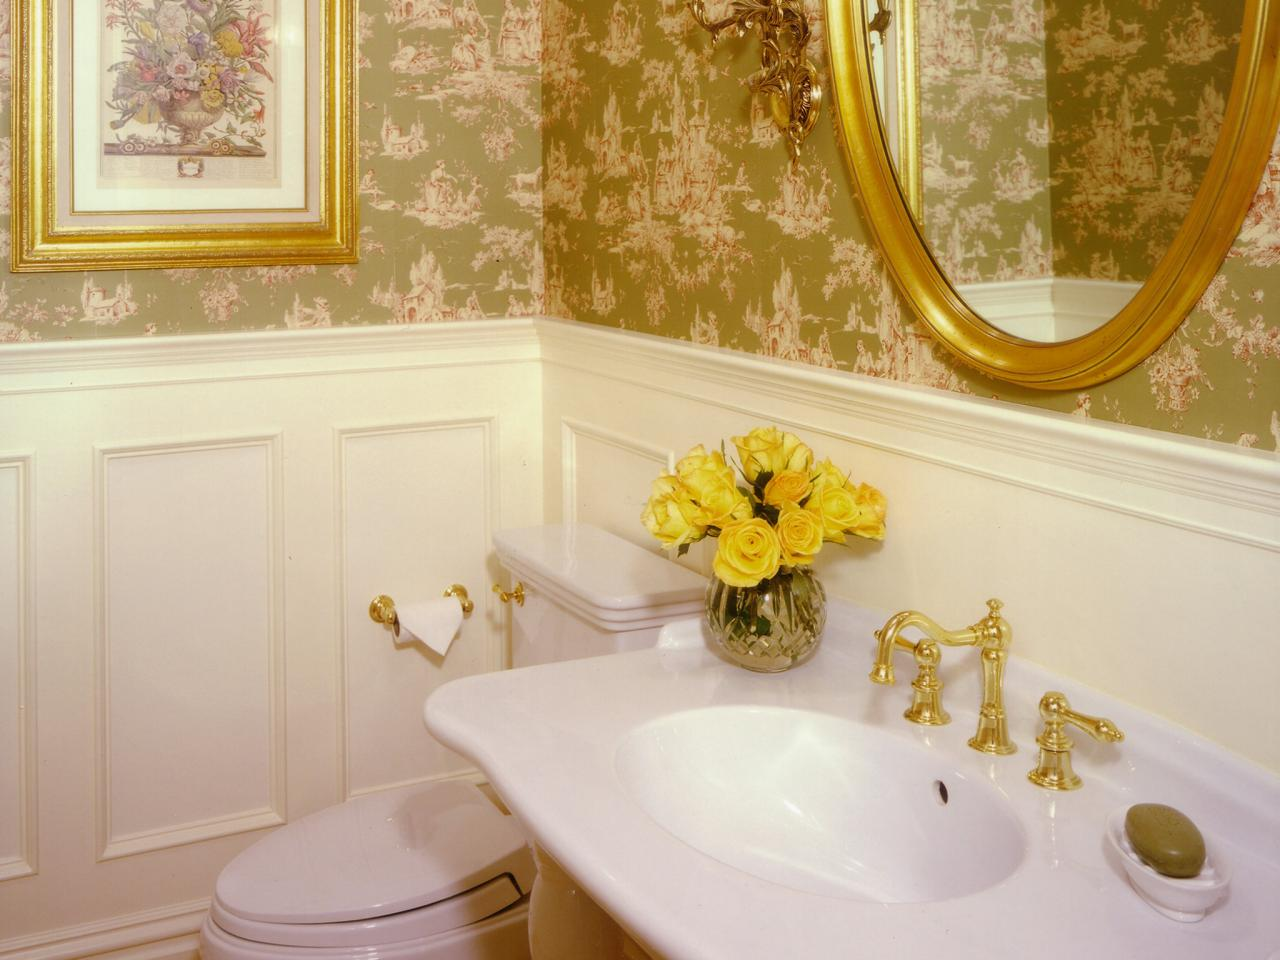 Fancy Sink and Golden Modern Faucet Plus Luring Mirrow also Beautiful Painting